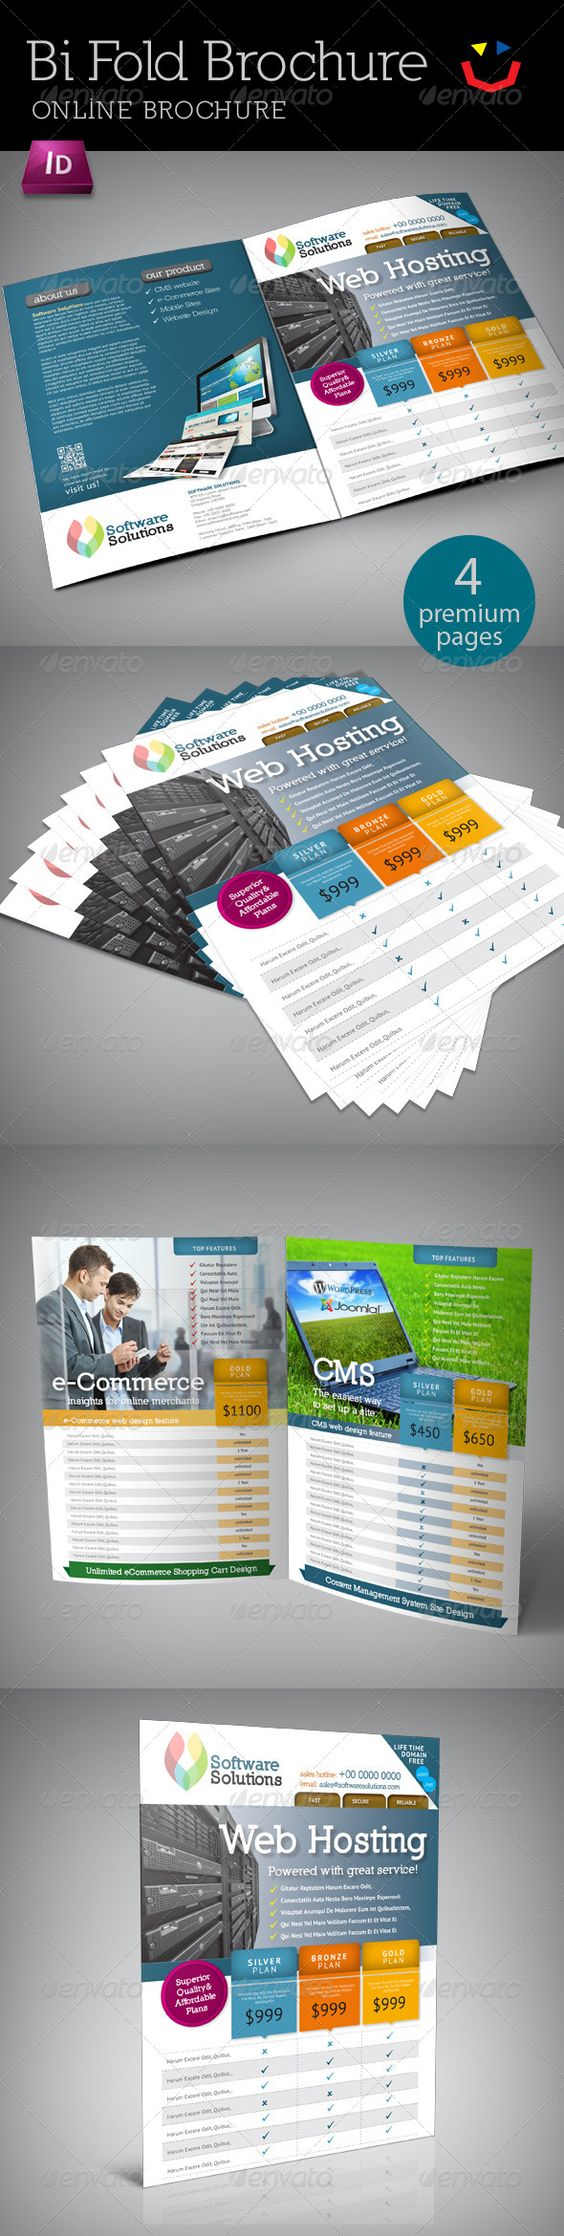 A one fold, two panel brochure template designed for internet provider company